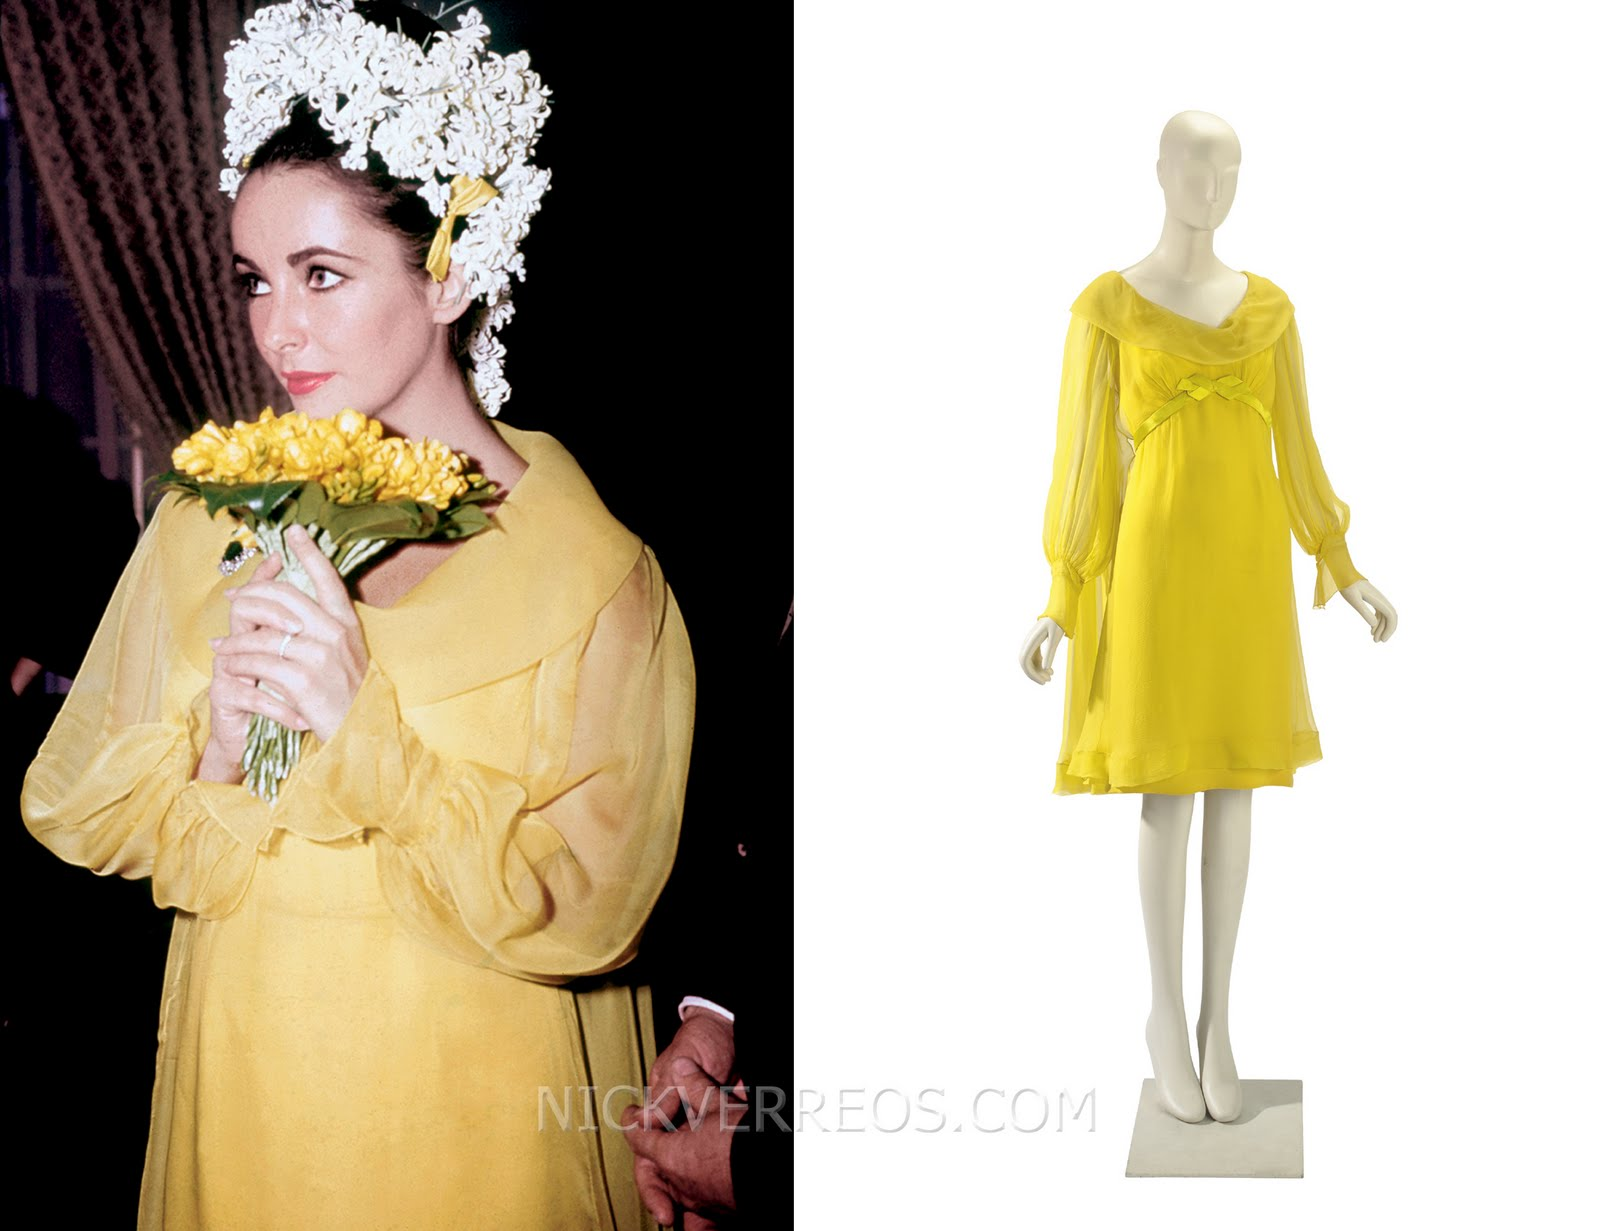 Sunflower yellow chiffon wedding dress designed by hollywood costume